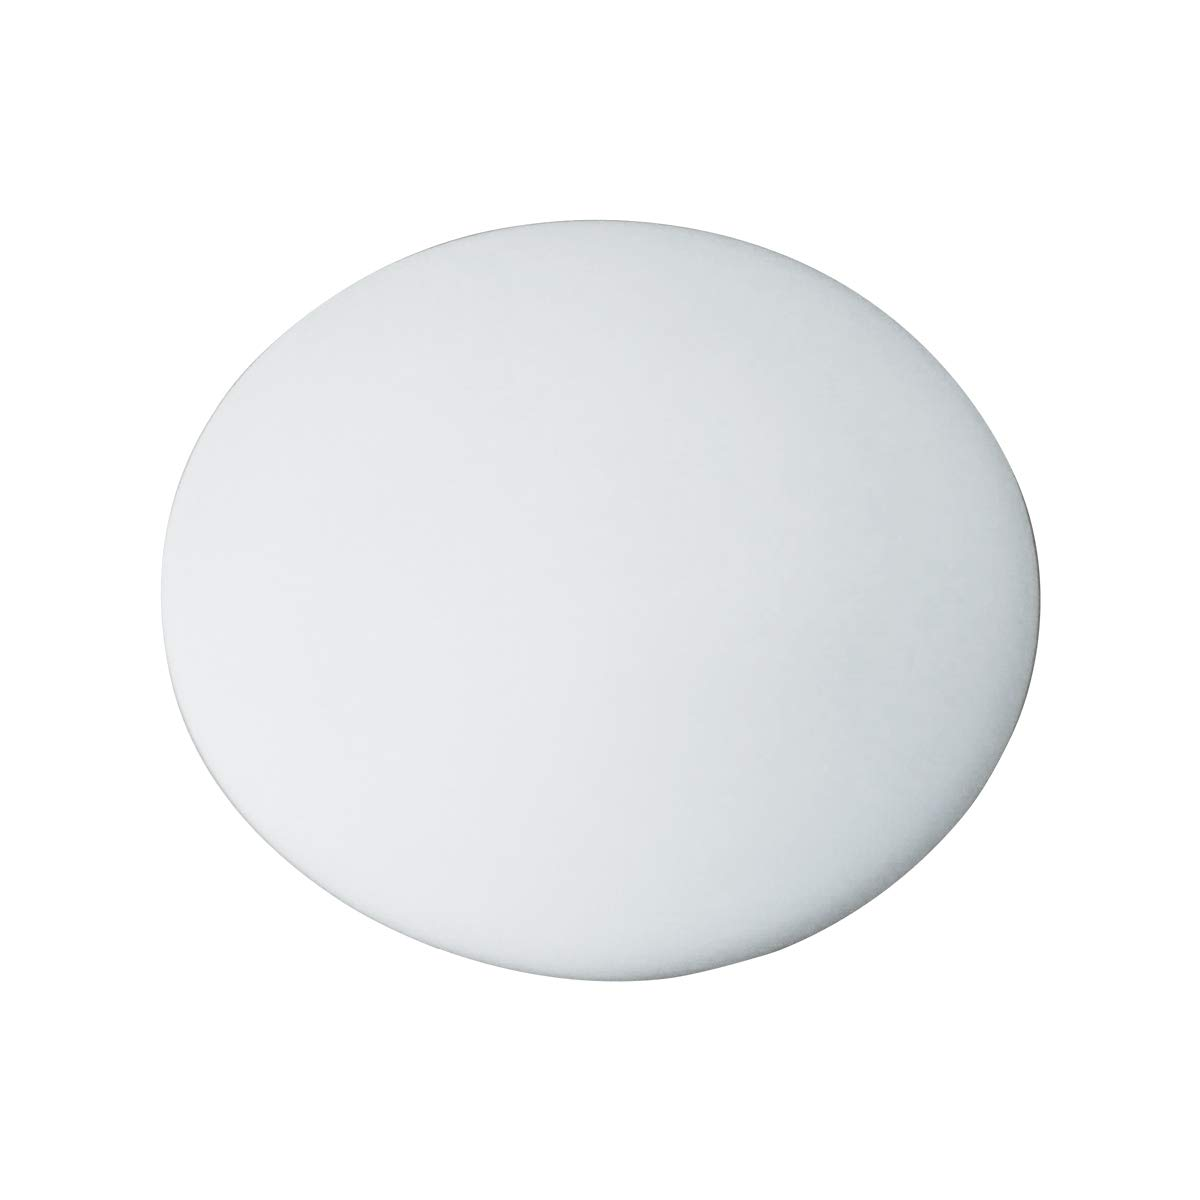 reiga Matte White Light Cover For Ceiling Fan,Light cover diameter 5.3'', Only Use to the reiga Ceiling Fan(B07BLYN4DD and B07BLVNRTW).